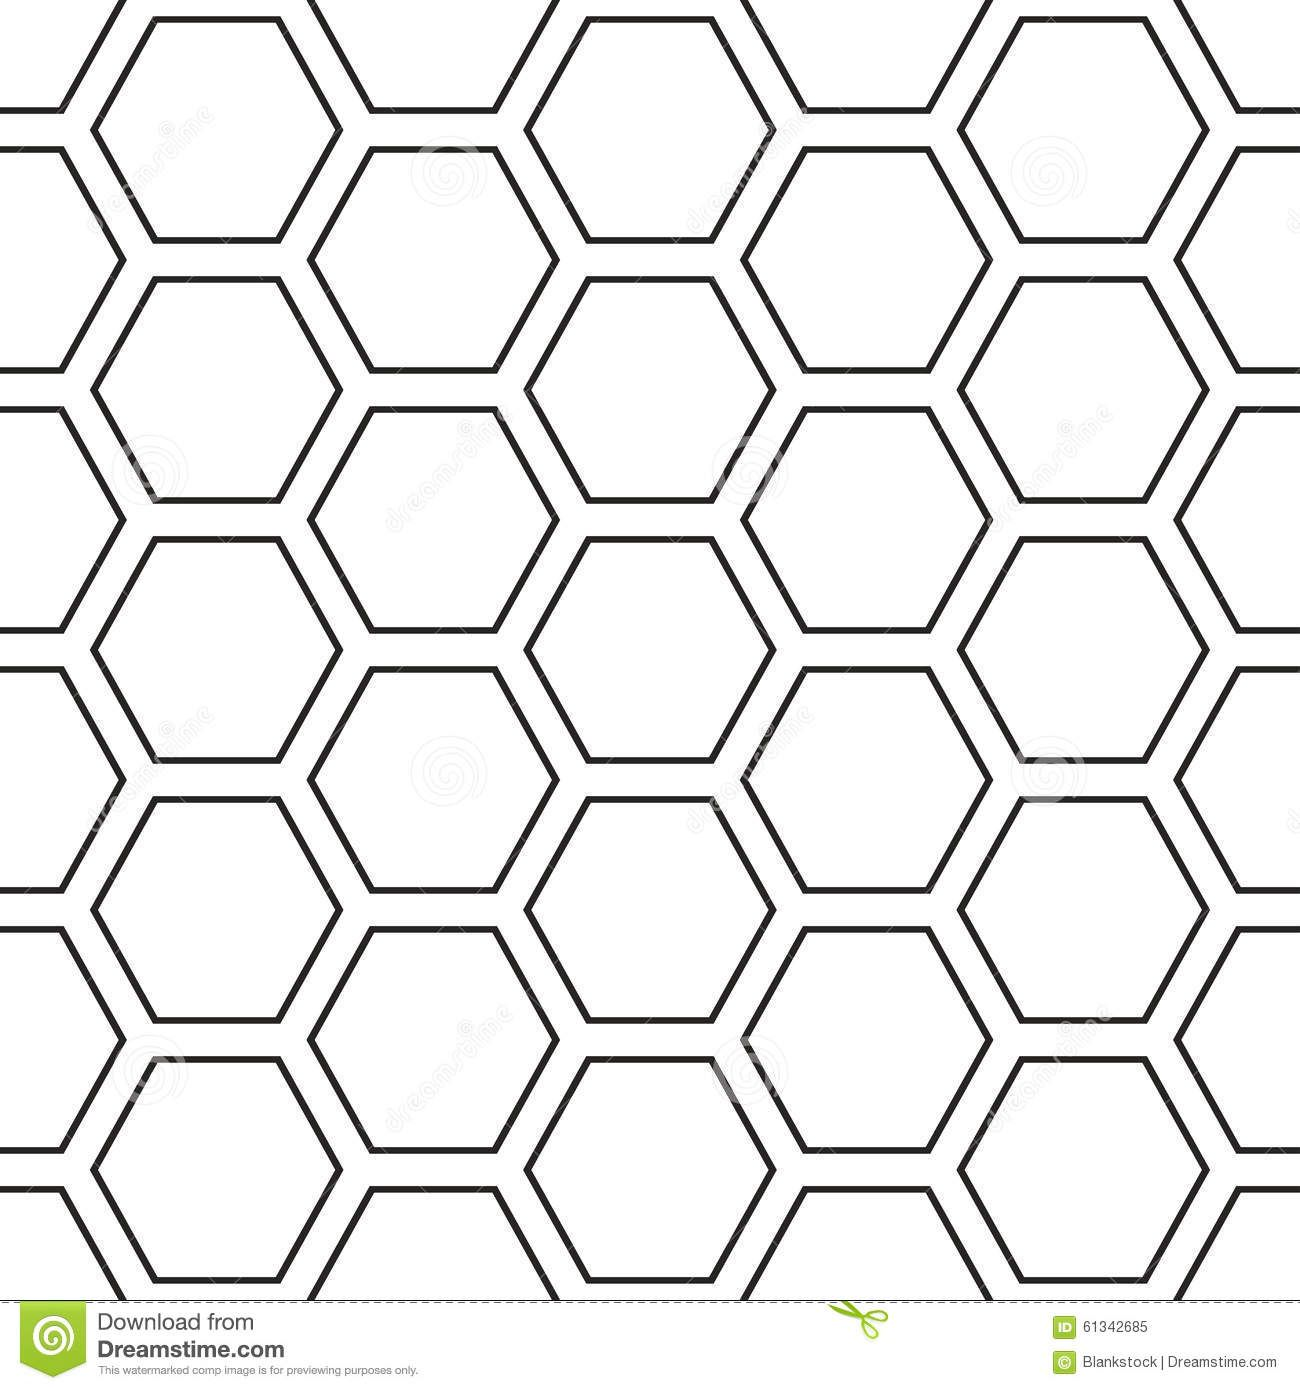 It's just an image of Wild Hex Paper Printable